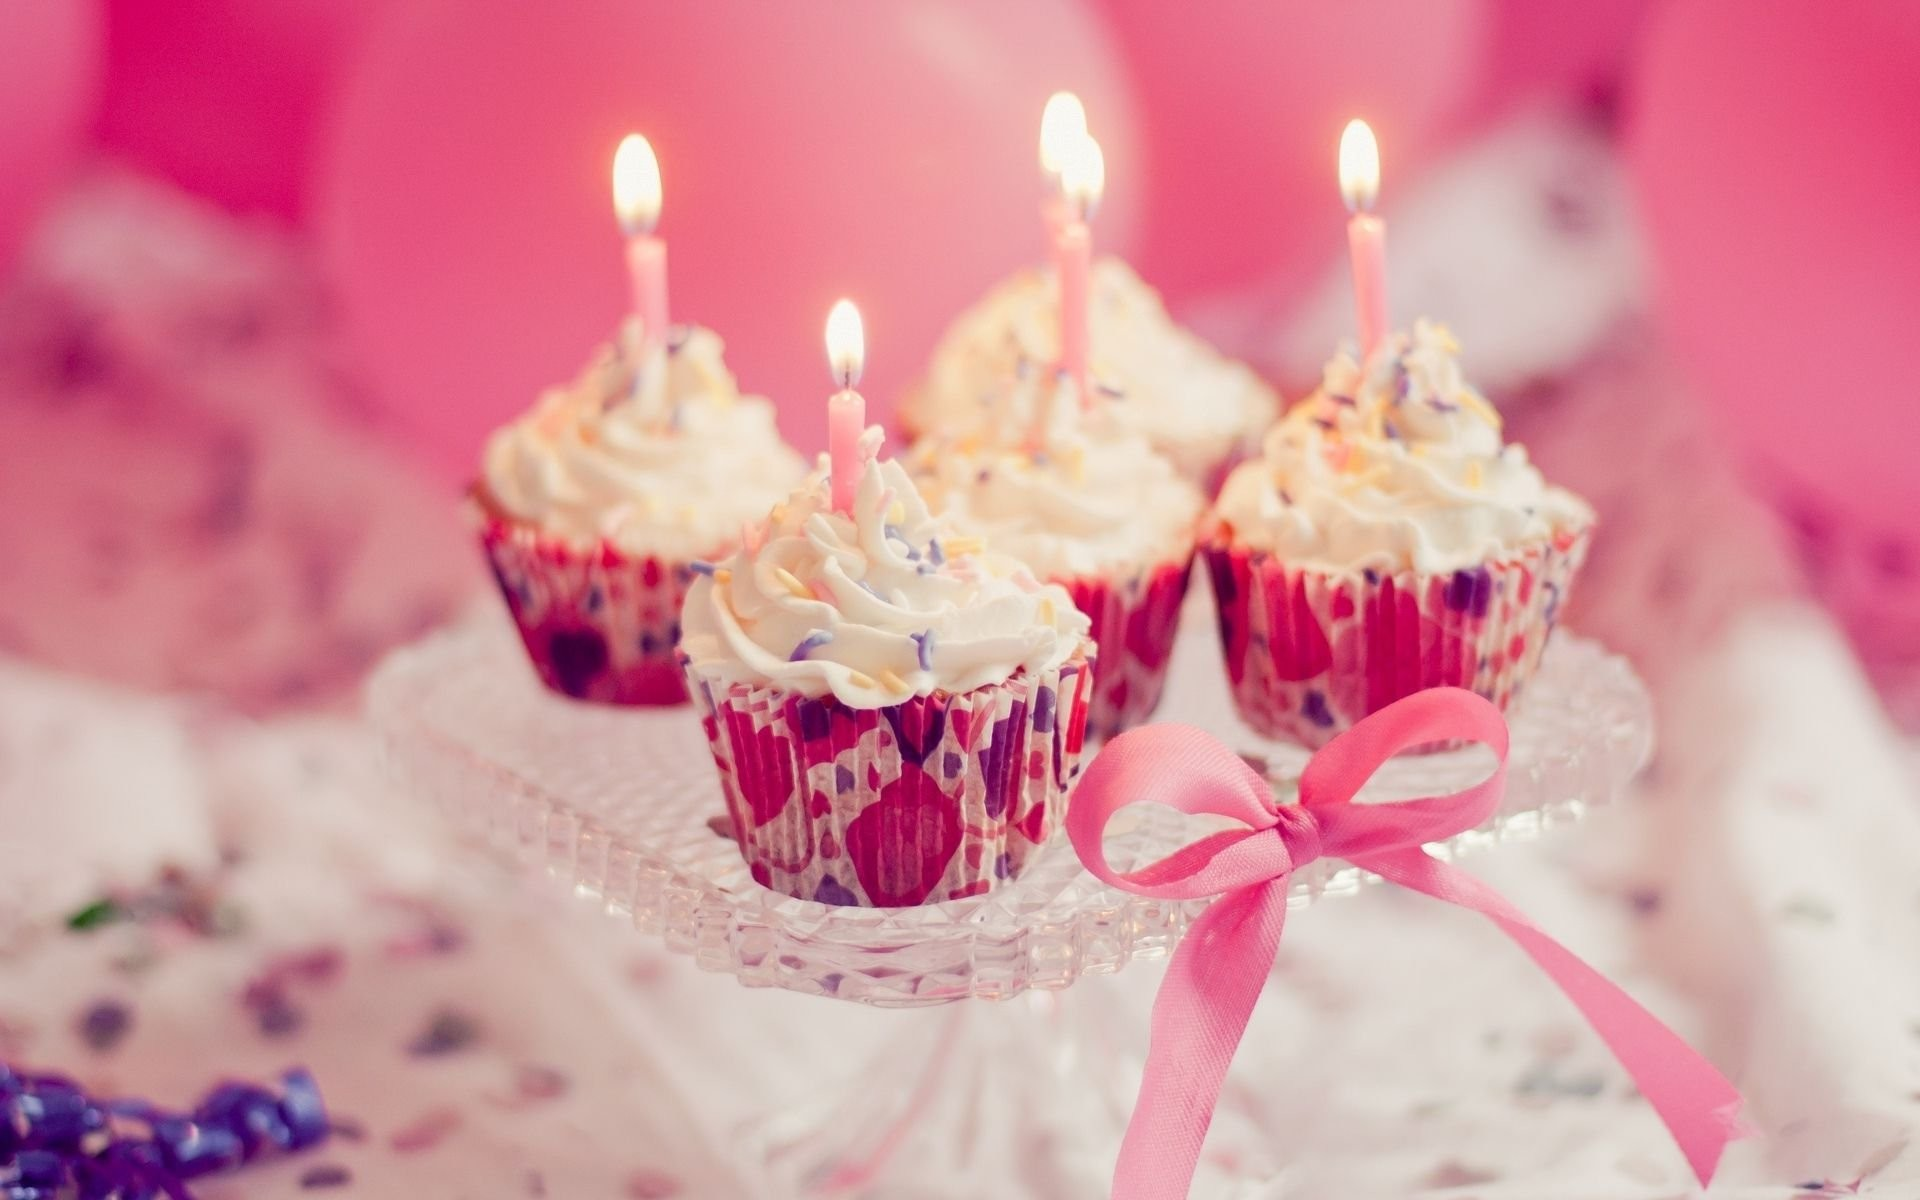 Res: 1920x1200, Food Wallpaper: Birthday Cupcake Wallpapers Images for HD .